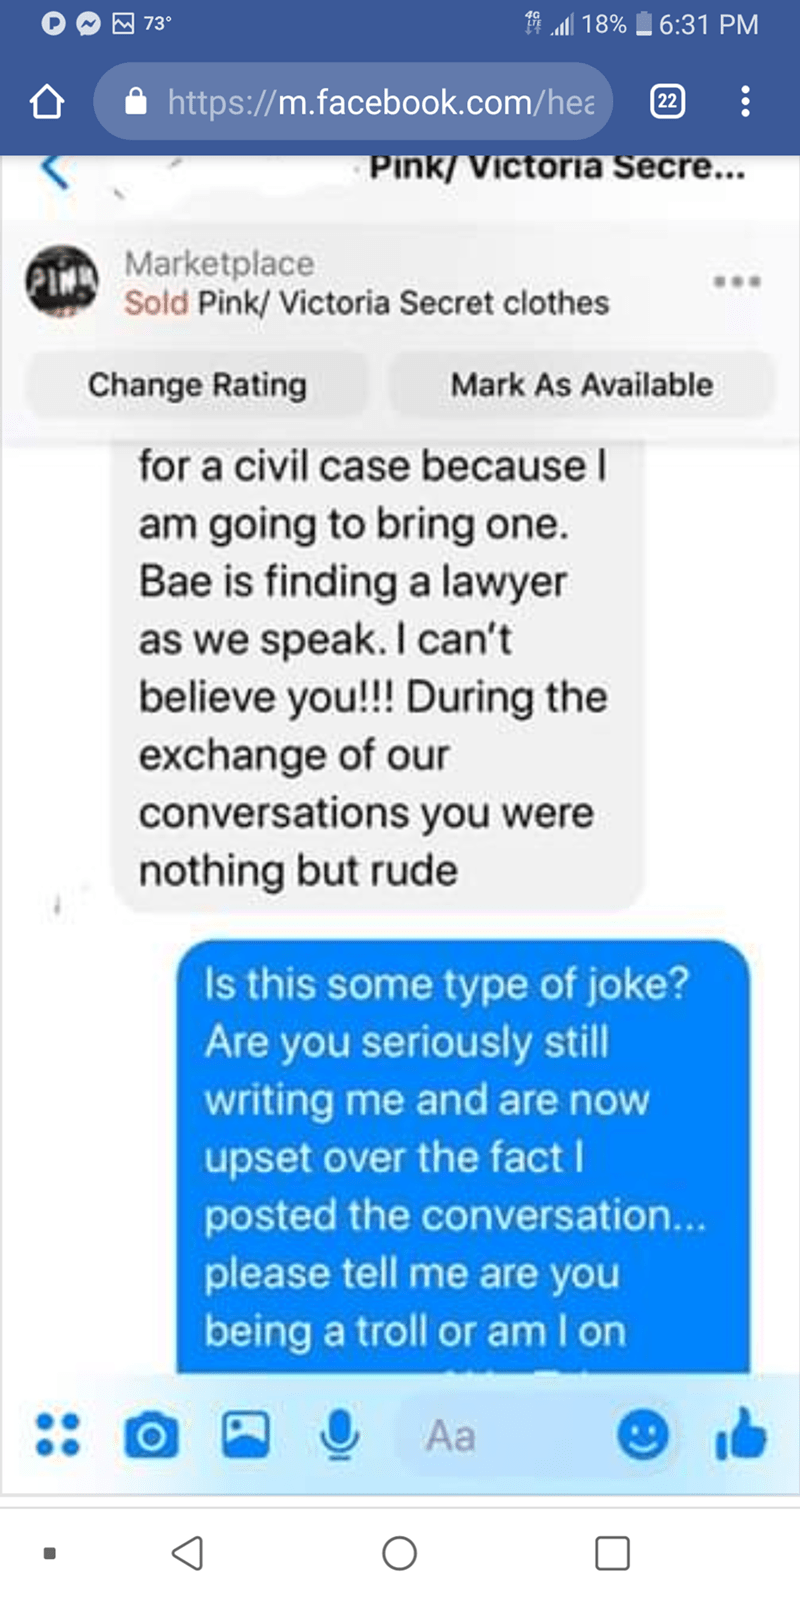 Text - d 18% 6:31 PM 73° http://m.facebook.com/hea 22 Pink/Victoria Secre... Marketplace Sold Pink/Victoria Secret clothes Change Rating Mark As Available for a civil case because am going to bring one. Bae is finding a lawyer as we speak. I can't believe you!! During the exchange of our conversations you were nothing but rude Is this some type of joke? Are you seriously still writing me and are now upset over the fact I posted the conversation... please tell me are you being a troll or am I on